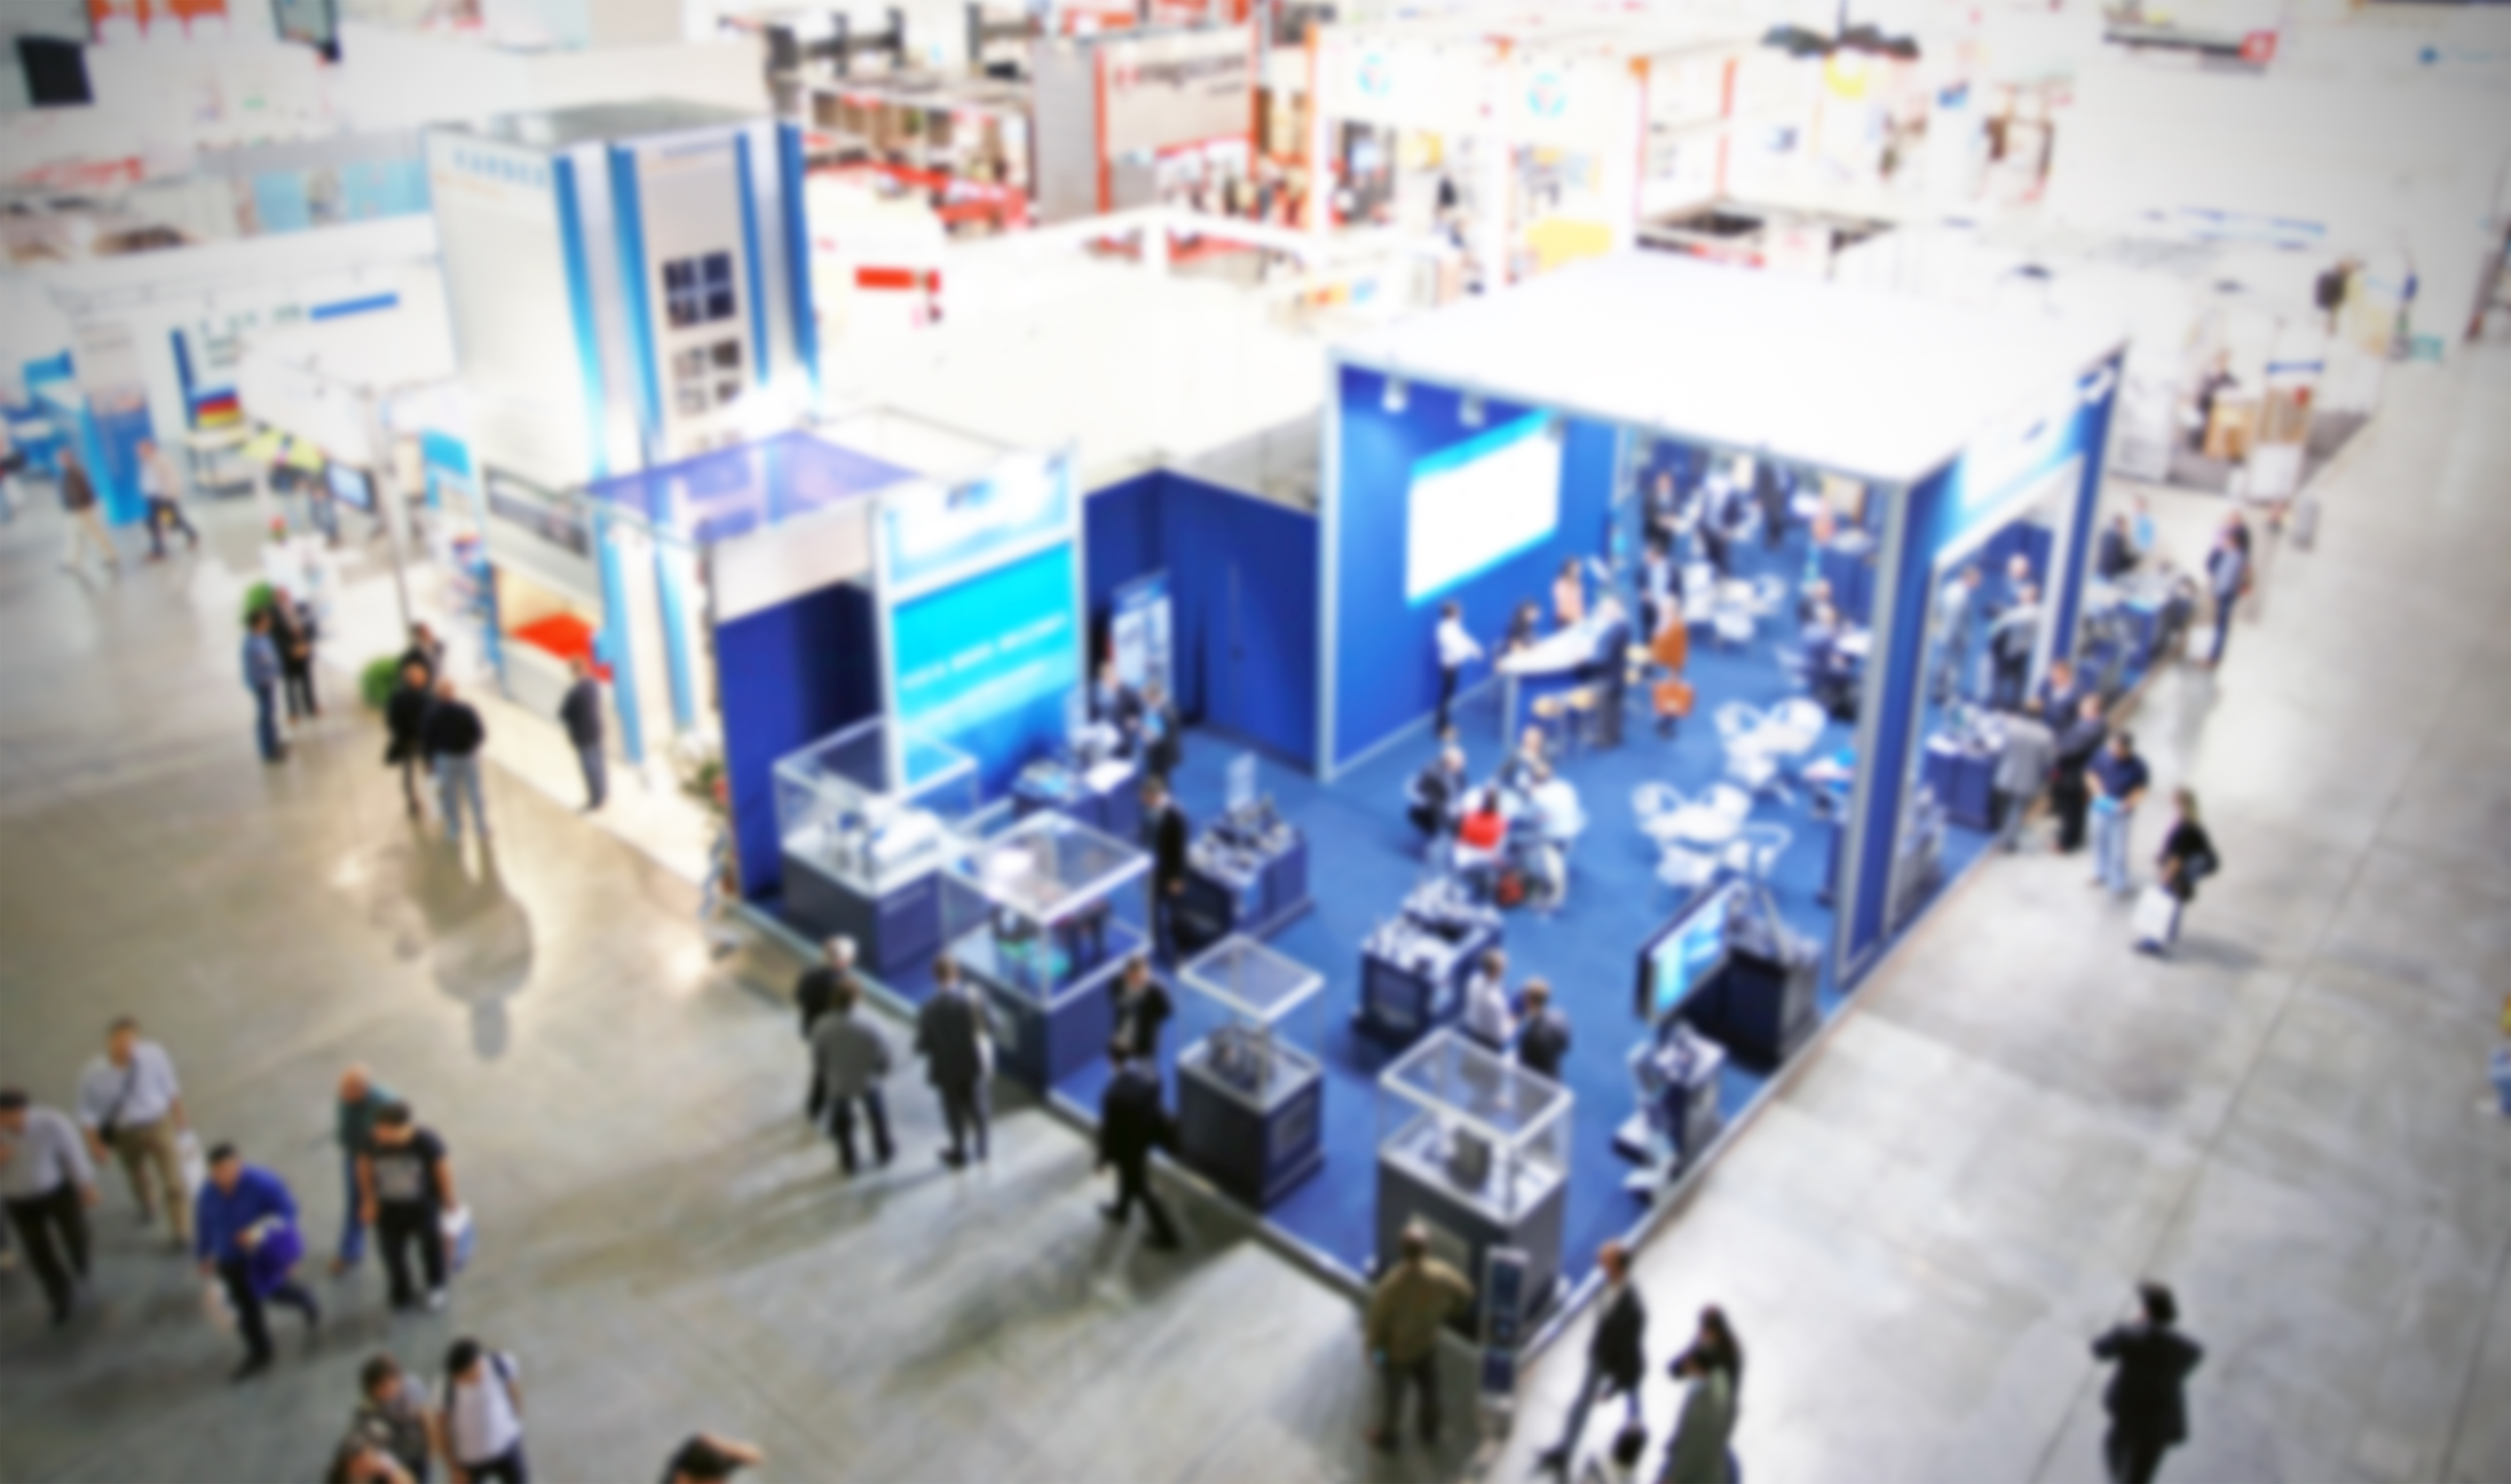 reasons to exhibit at trade shows